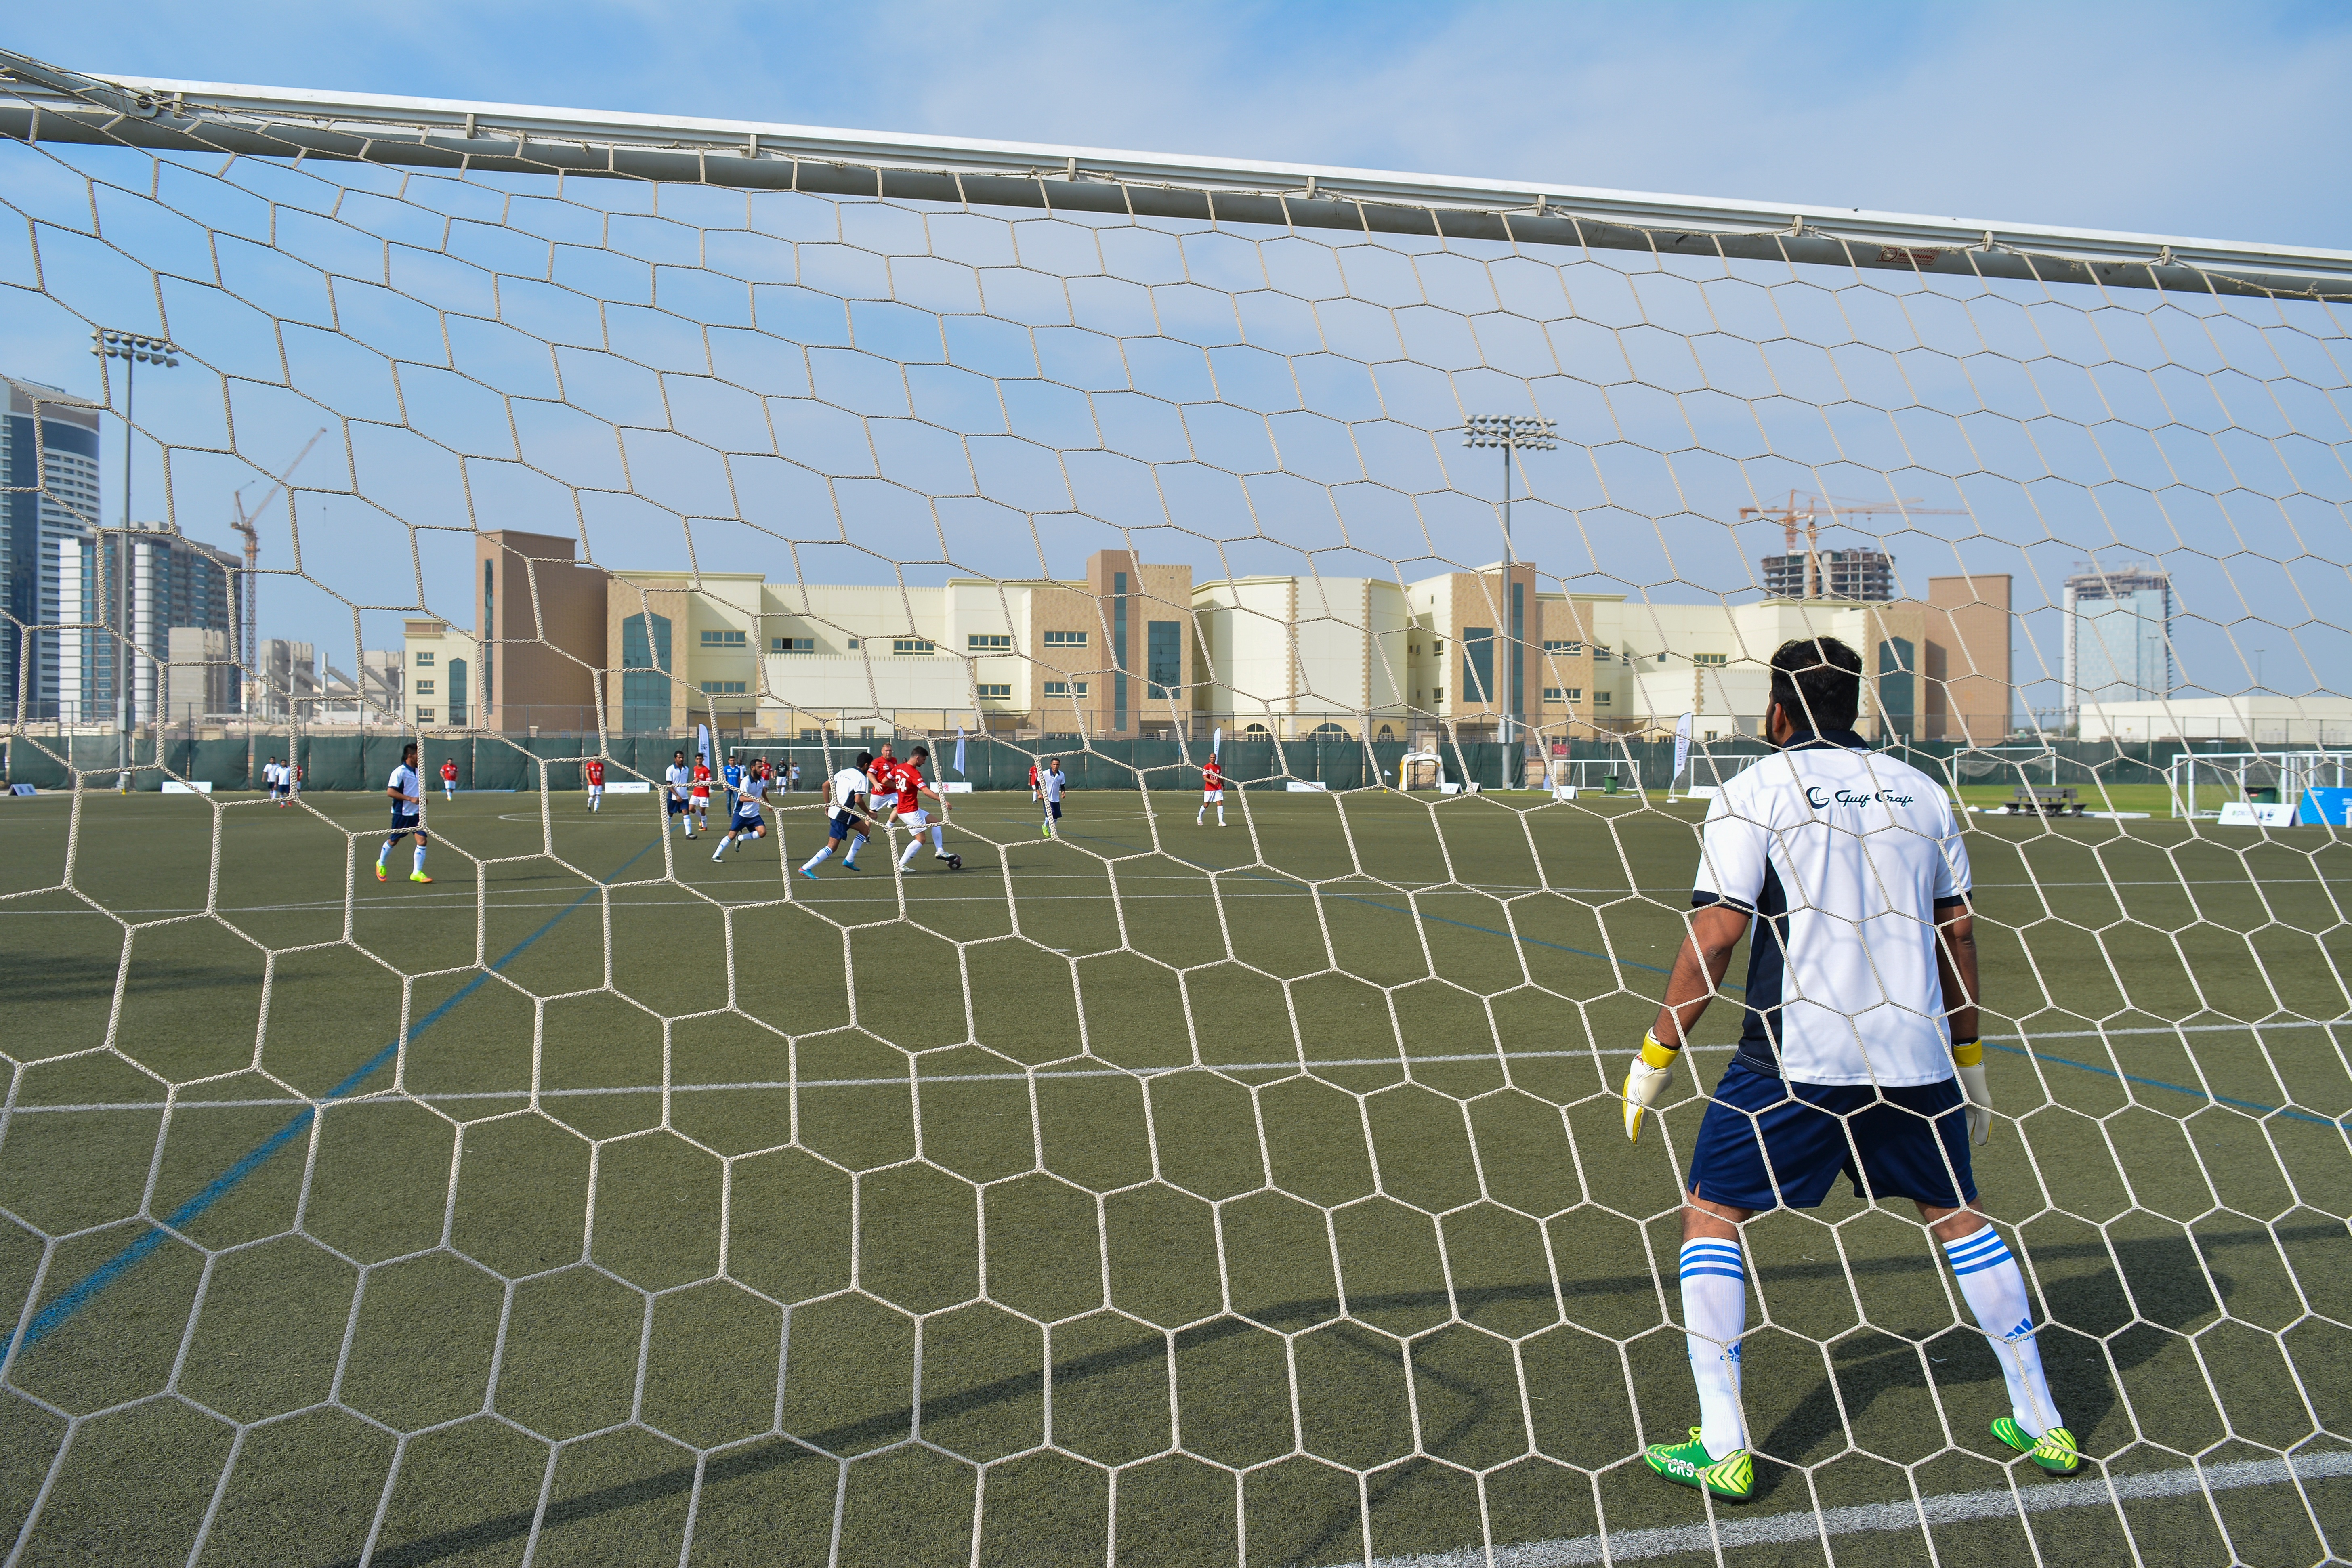 Gulf Craft goal keeper patiently waits to block the ball